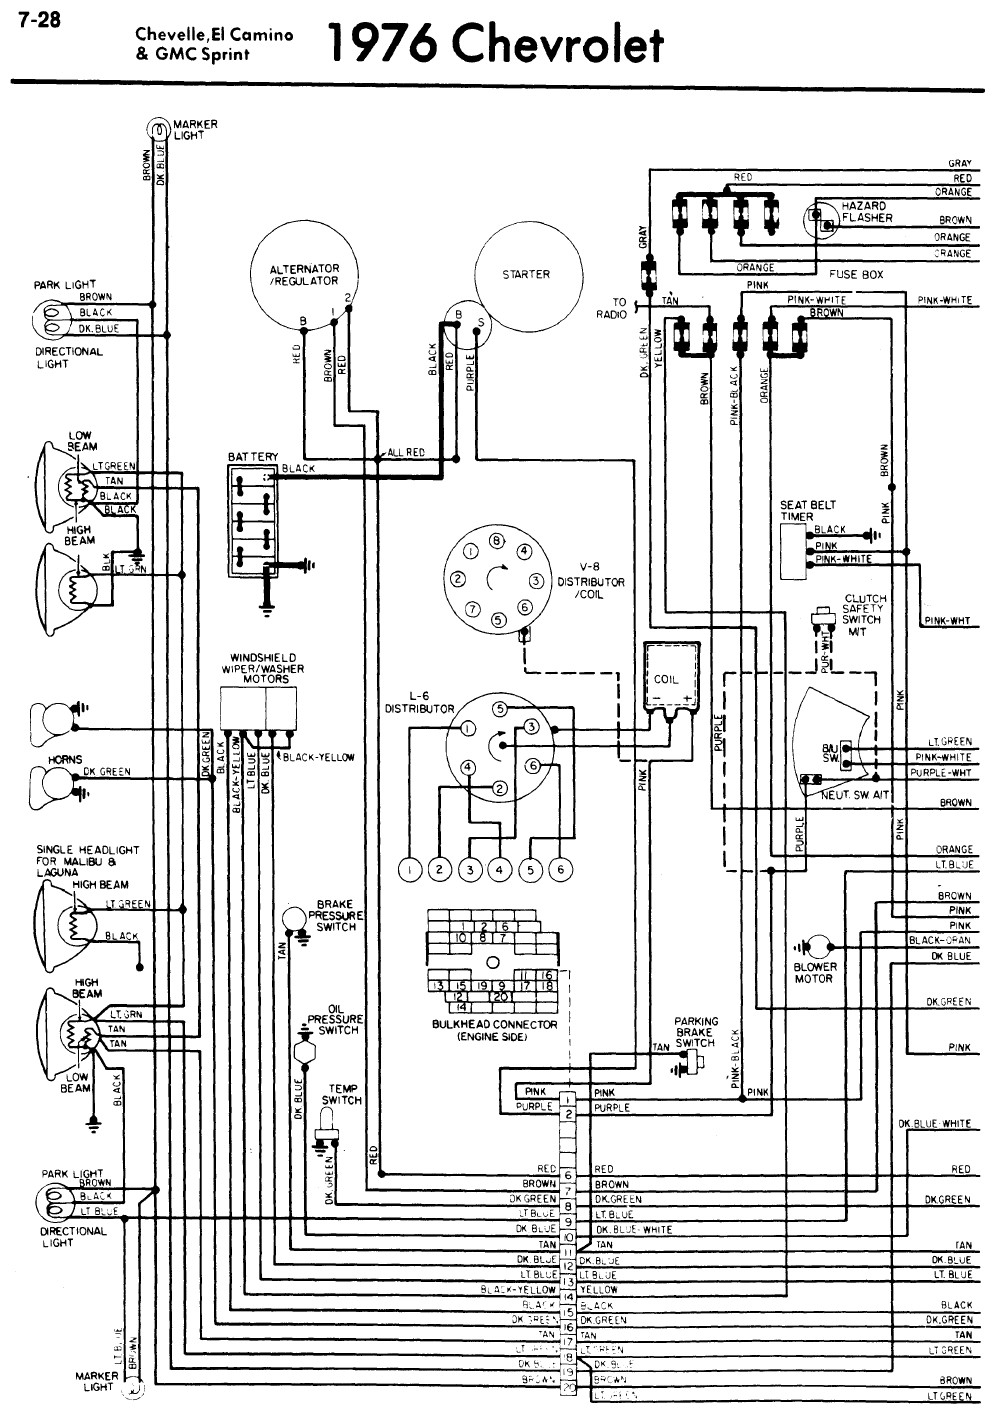 1976 el camino wiring diagram heater blower fan quit there is no power to the dash #12